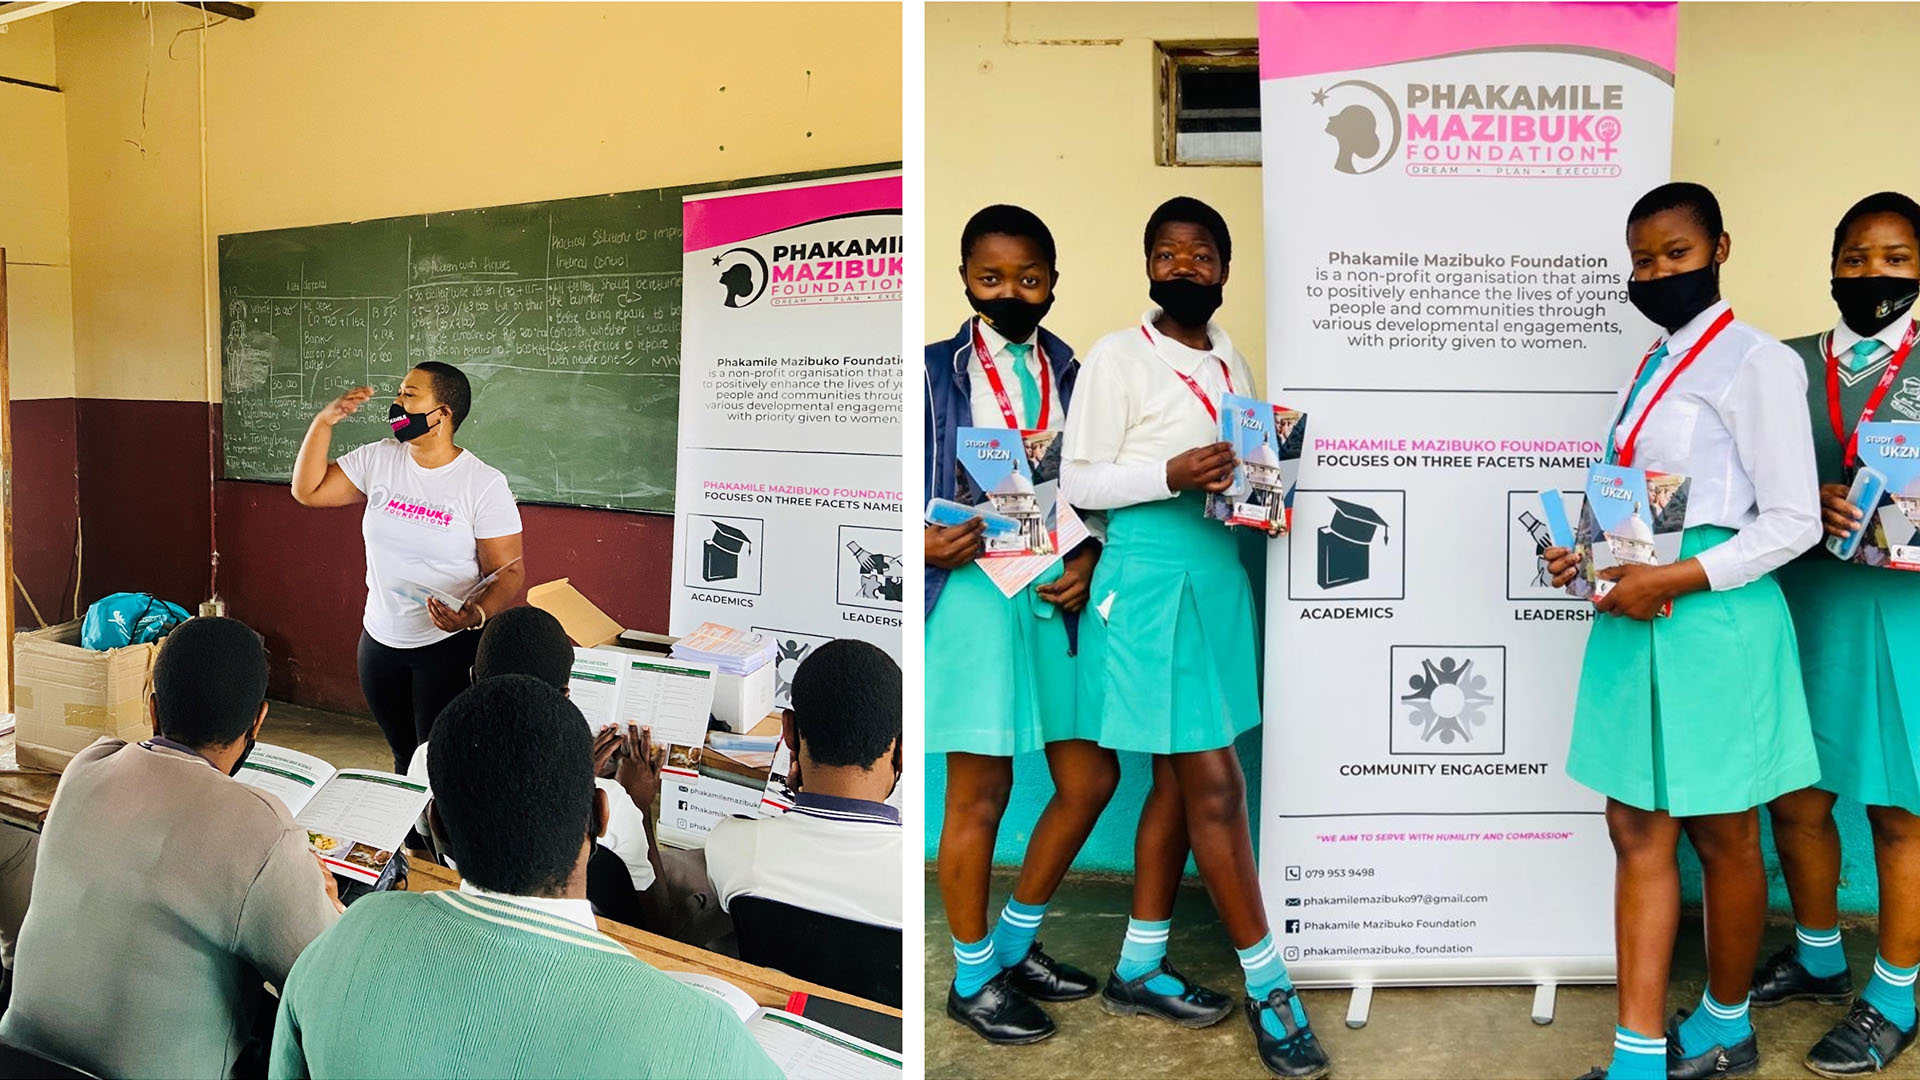 Highlights from a career guidance event, hosted by education student Ms Phakamile Mazibuko.